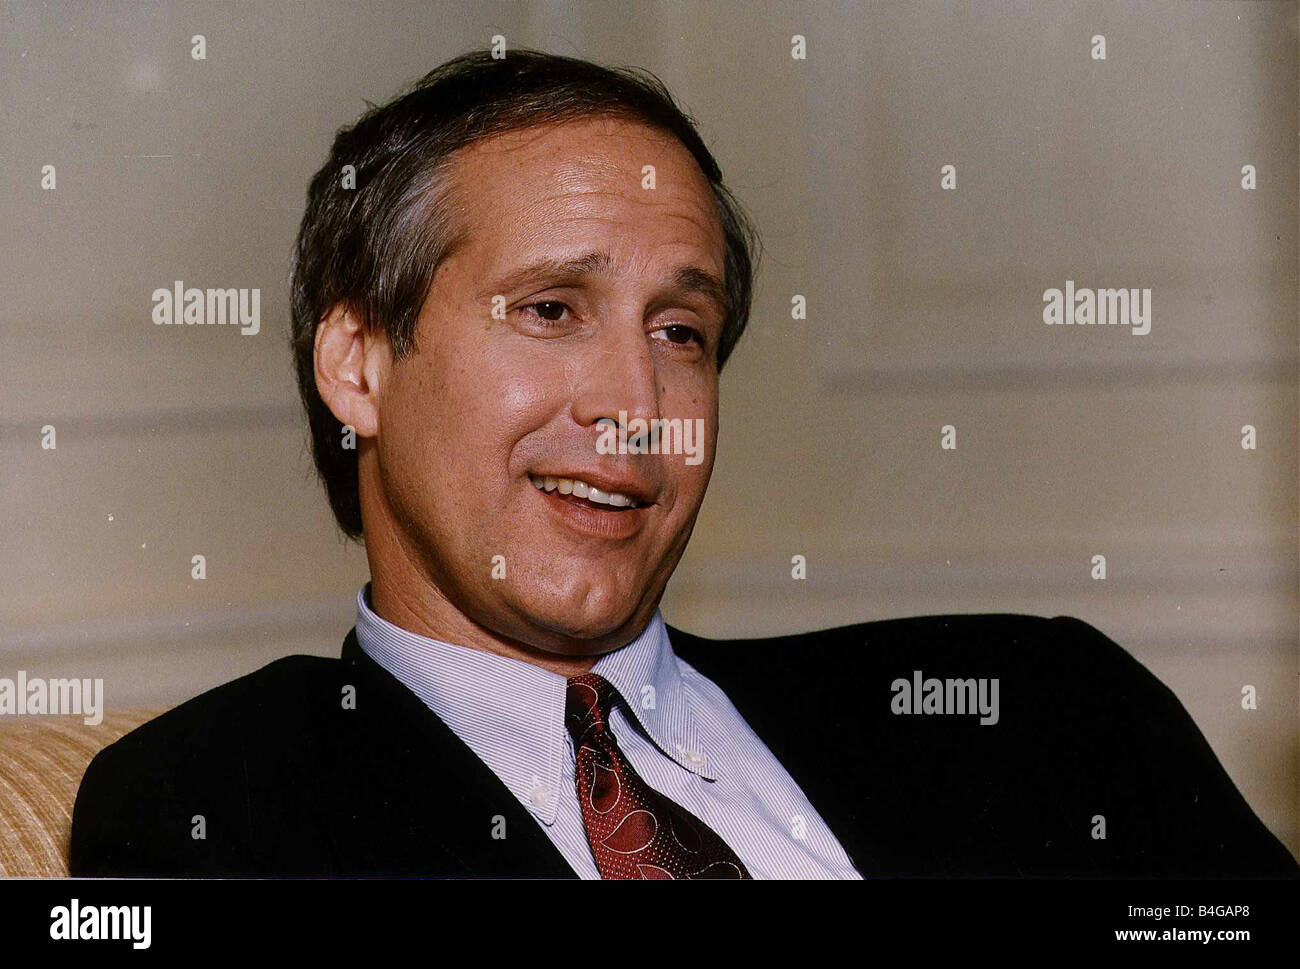 Chevy Chase Actor Stock Photos   Chevy Chase Actor Stock Images   Alamy Chevy Chase Actor